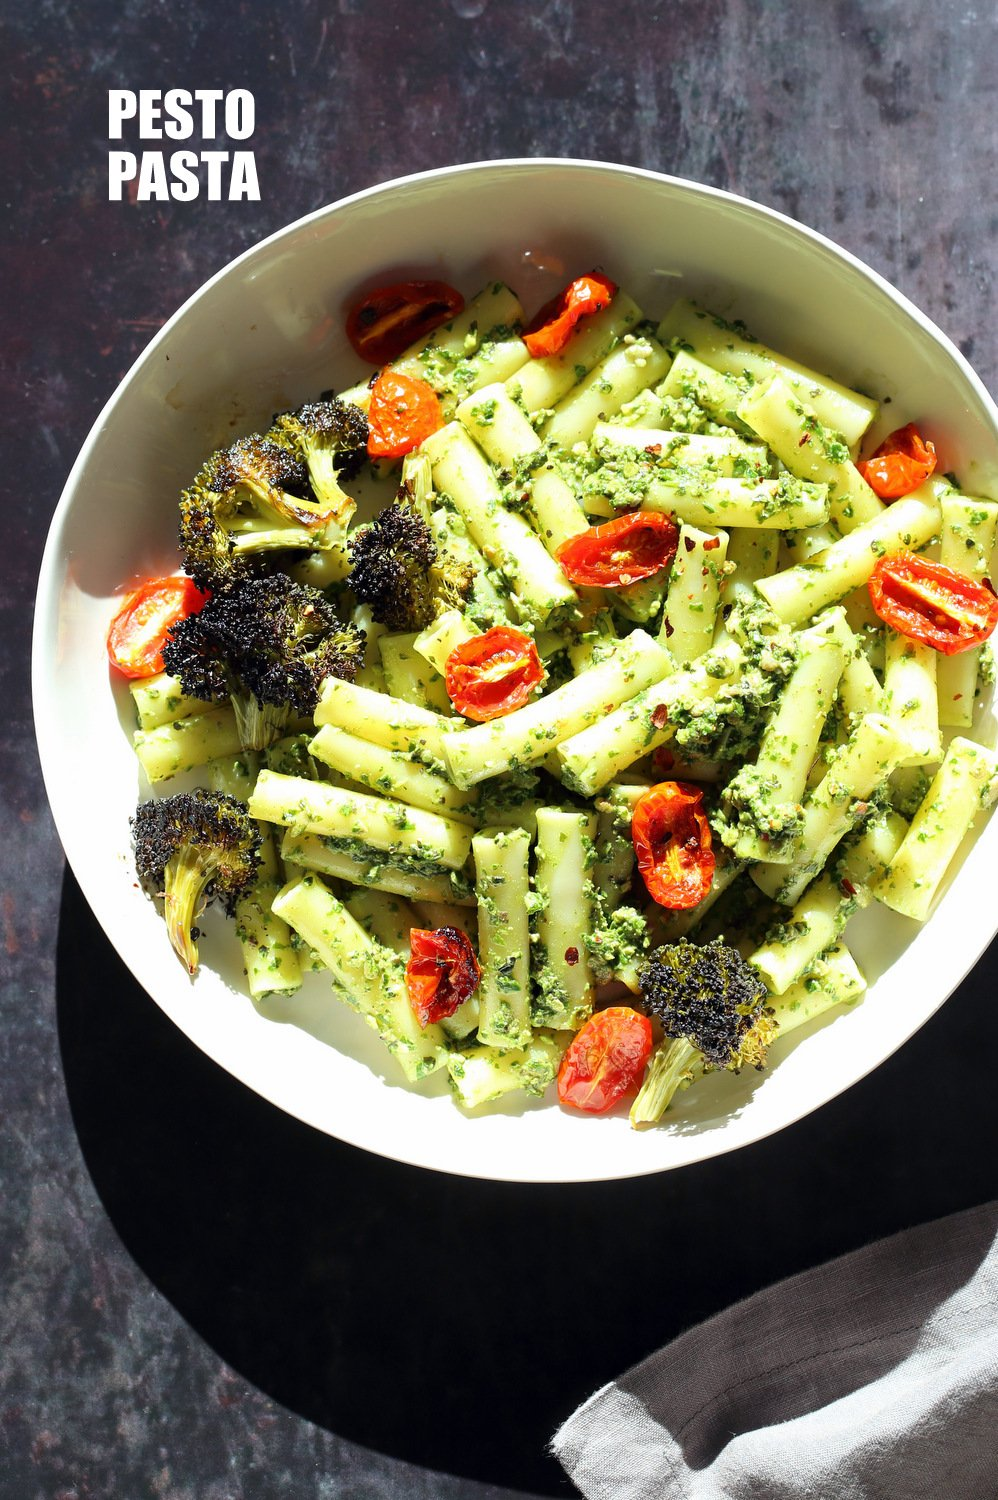 Large While Bowl with Vegan Pesto Pasta with Ziti, roasted cherry tomatoes and Charred broccoli on black stone